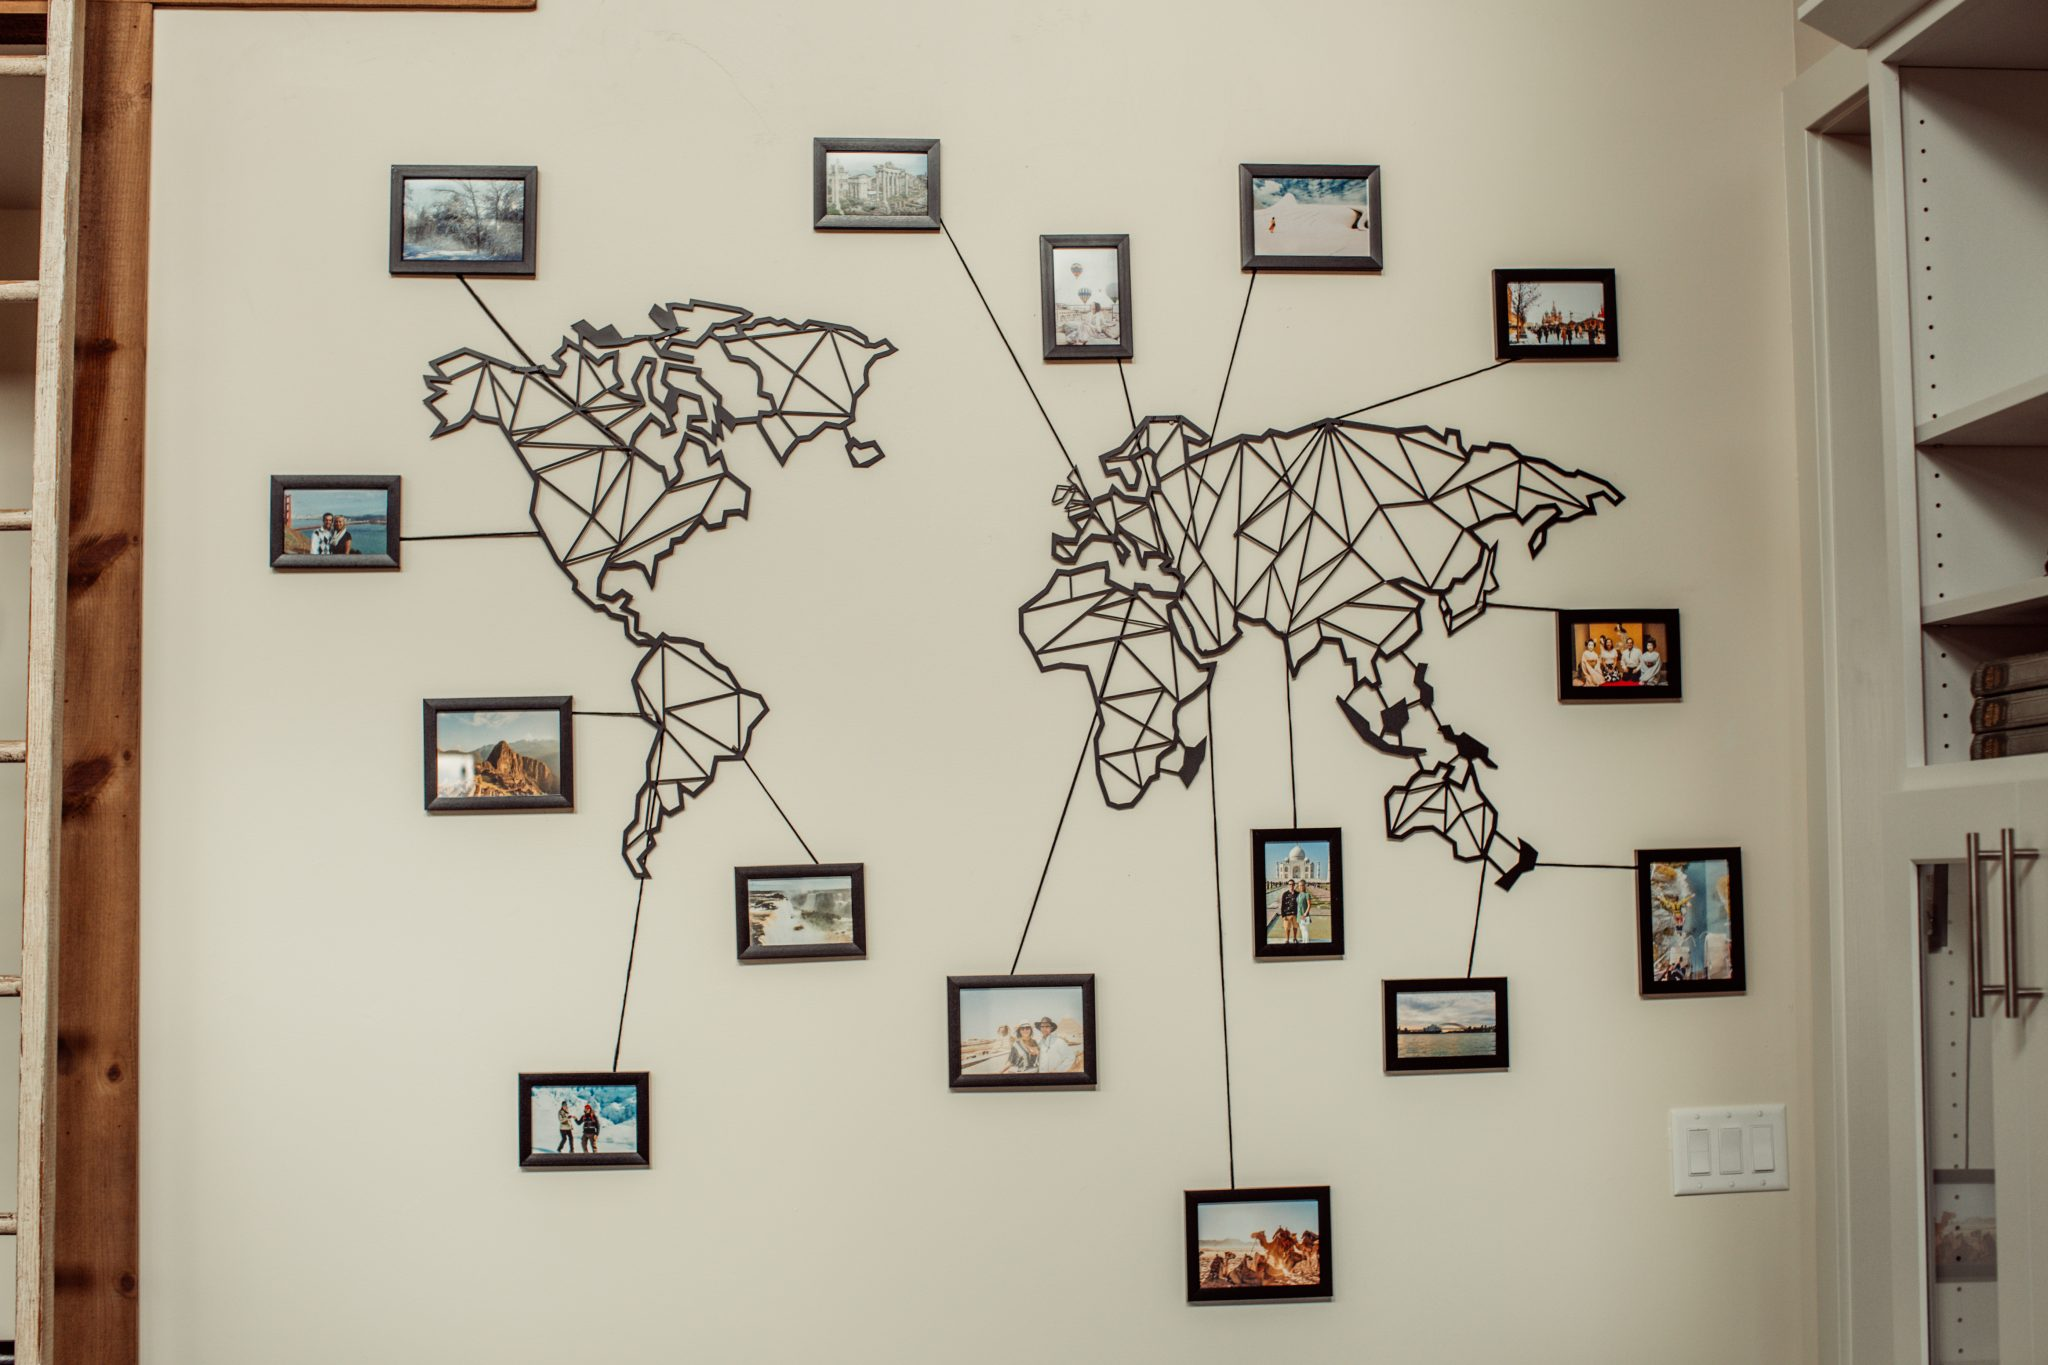 Travel Wall Ideas – How to Display Travel Photos & More!